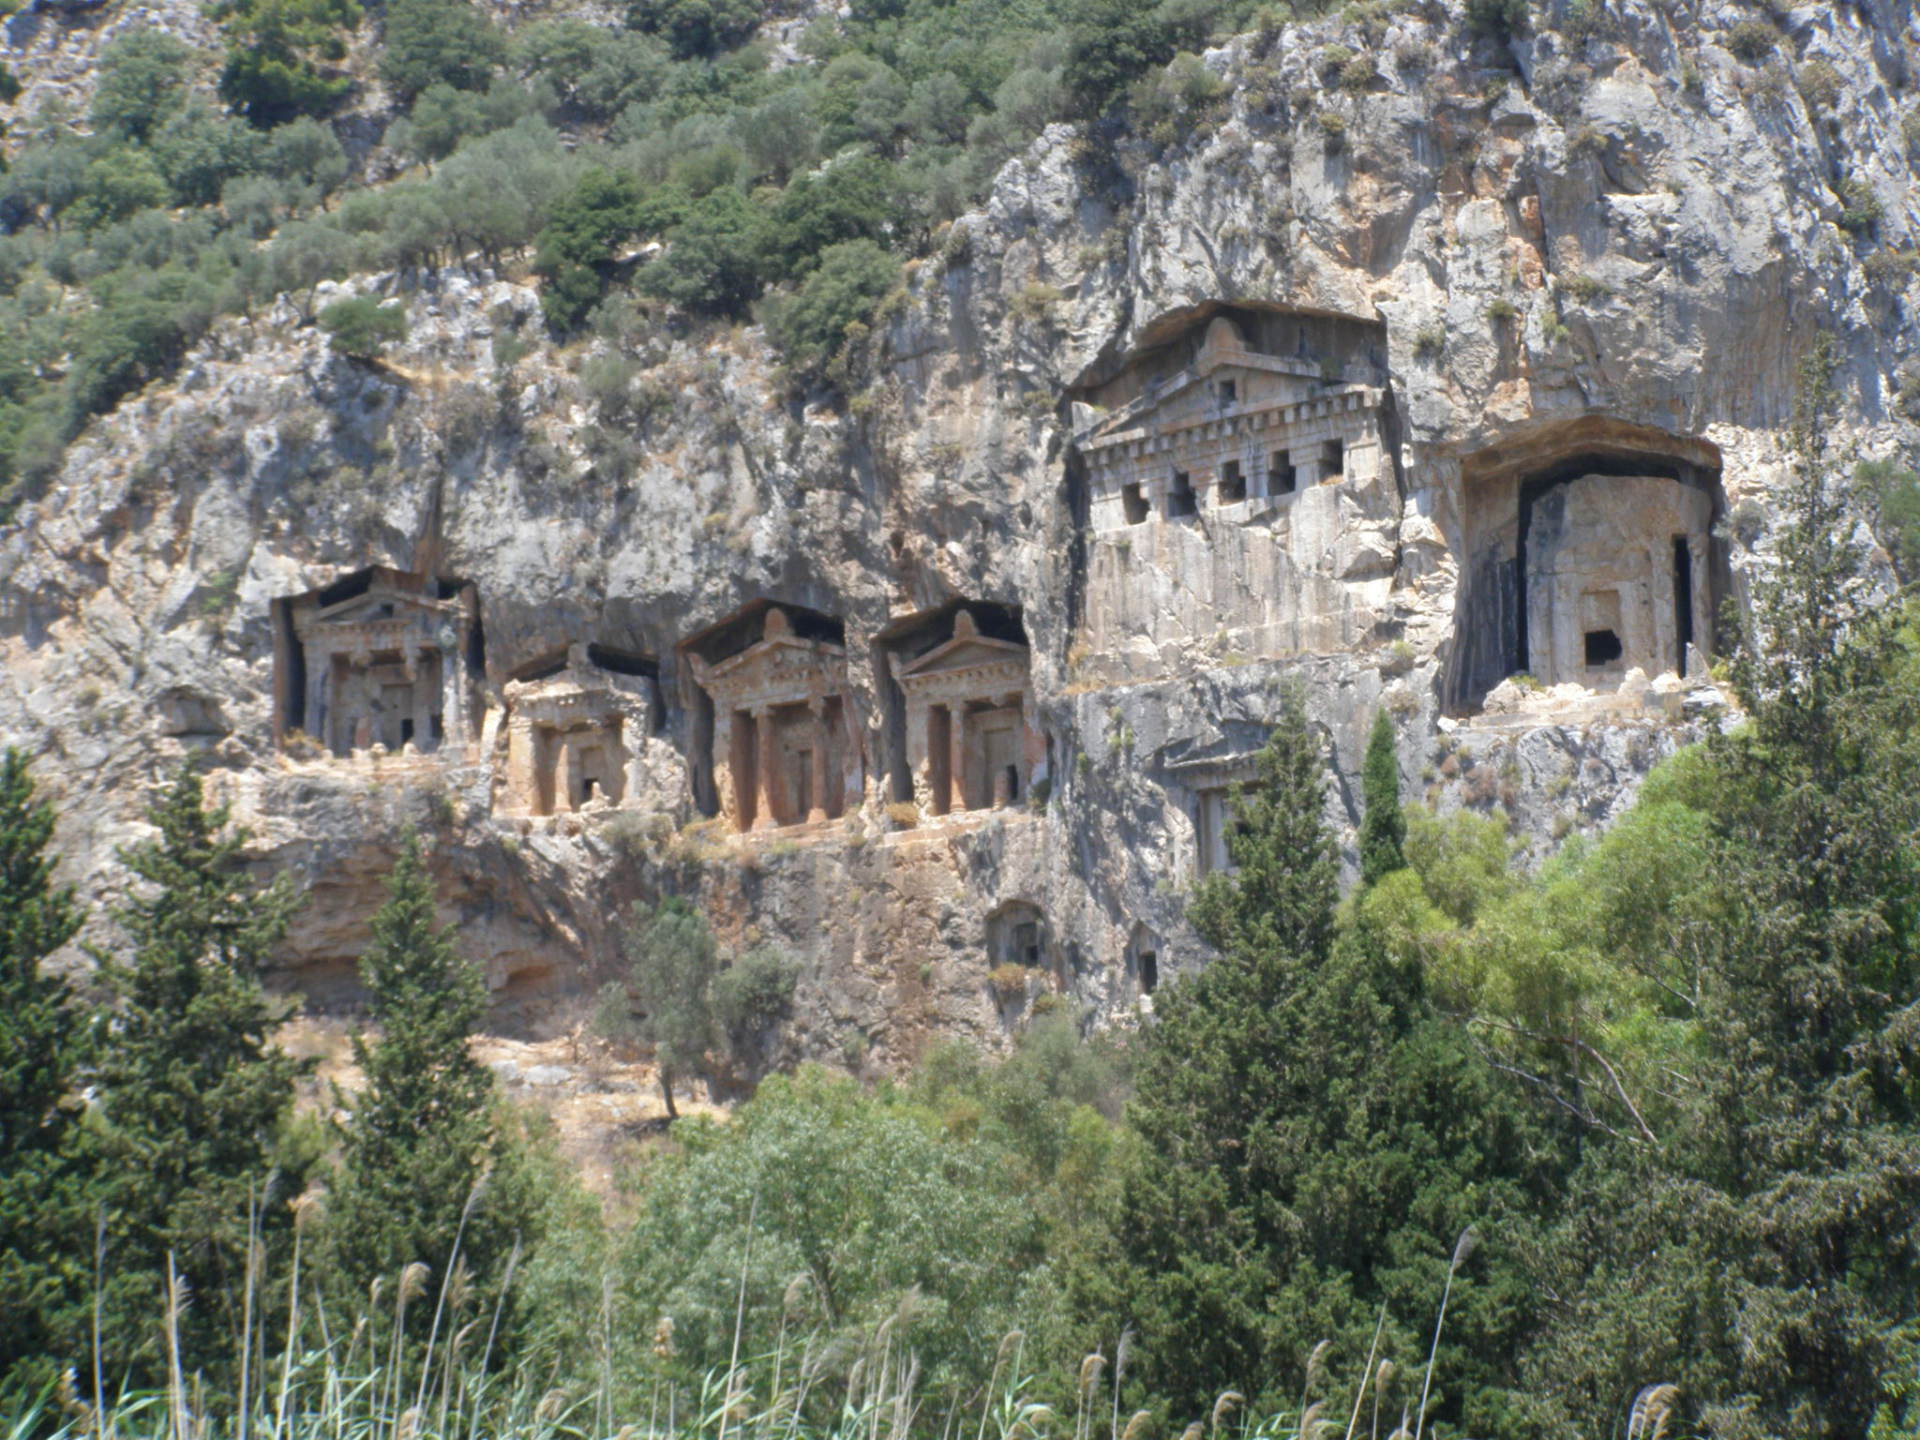 The marble cliffs overlooking Dalyan were carved with ornate tombs. Dalyan, Turkey: chapter 67, You must only to love them. http://mershon.wordpress.com